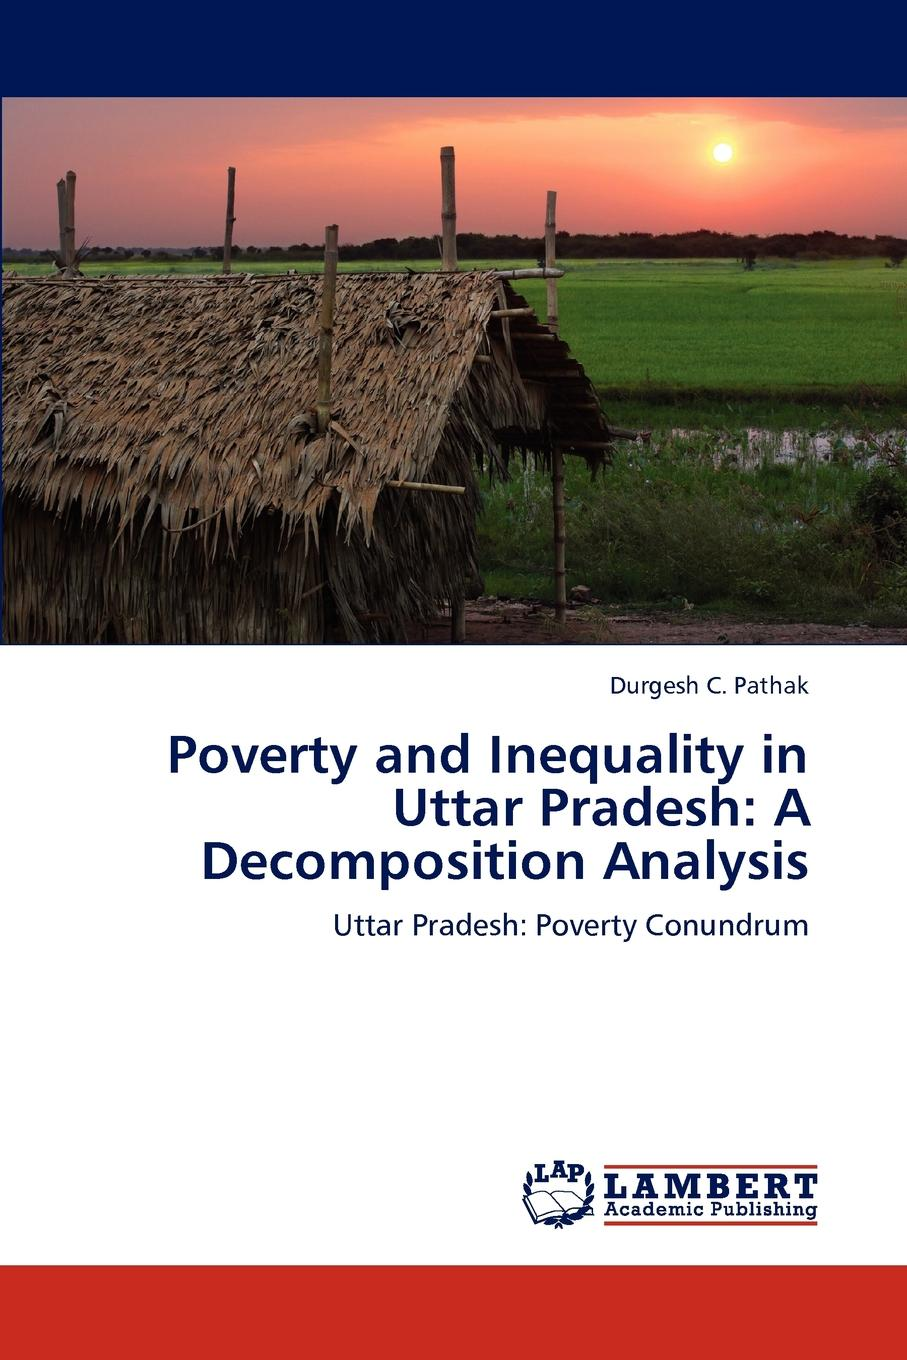 Durgesh C. Pathak Poverty and Inequality in Uttar Pradesh. A Decomposition Analysis недорго, оригинальная цена